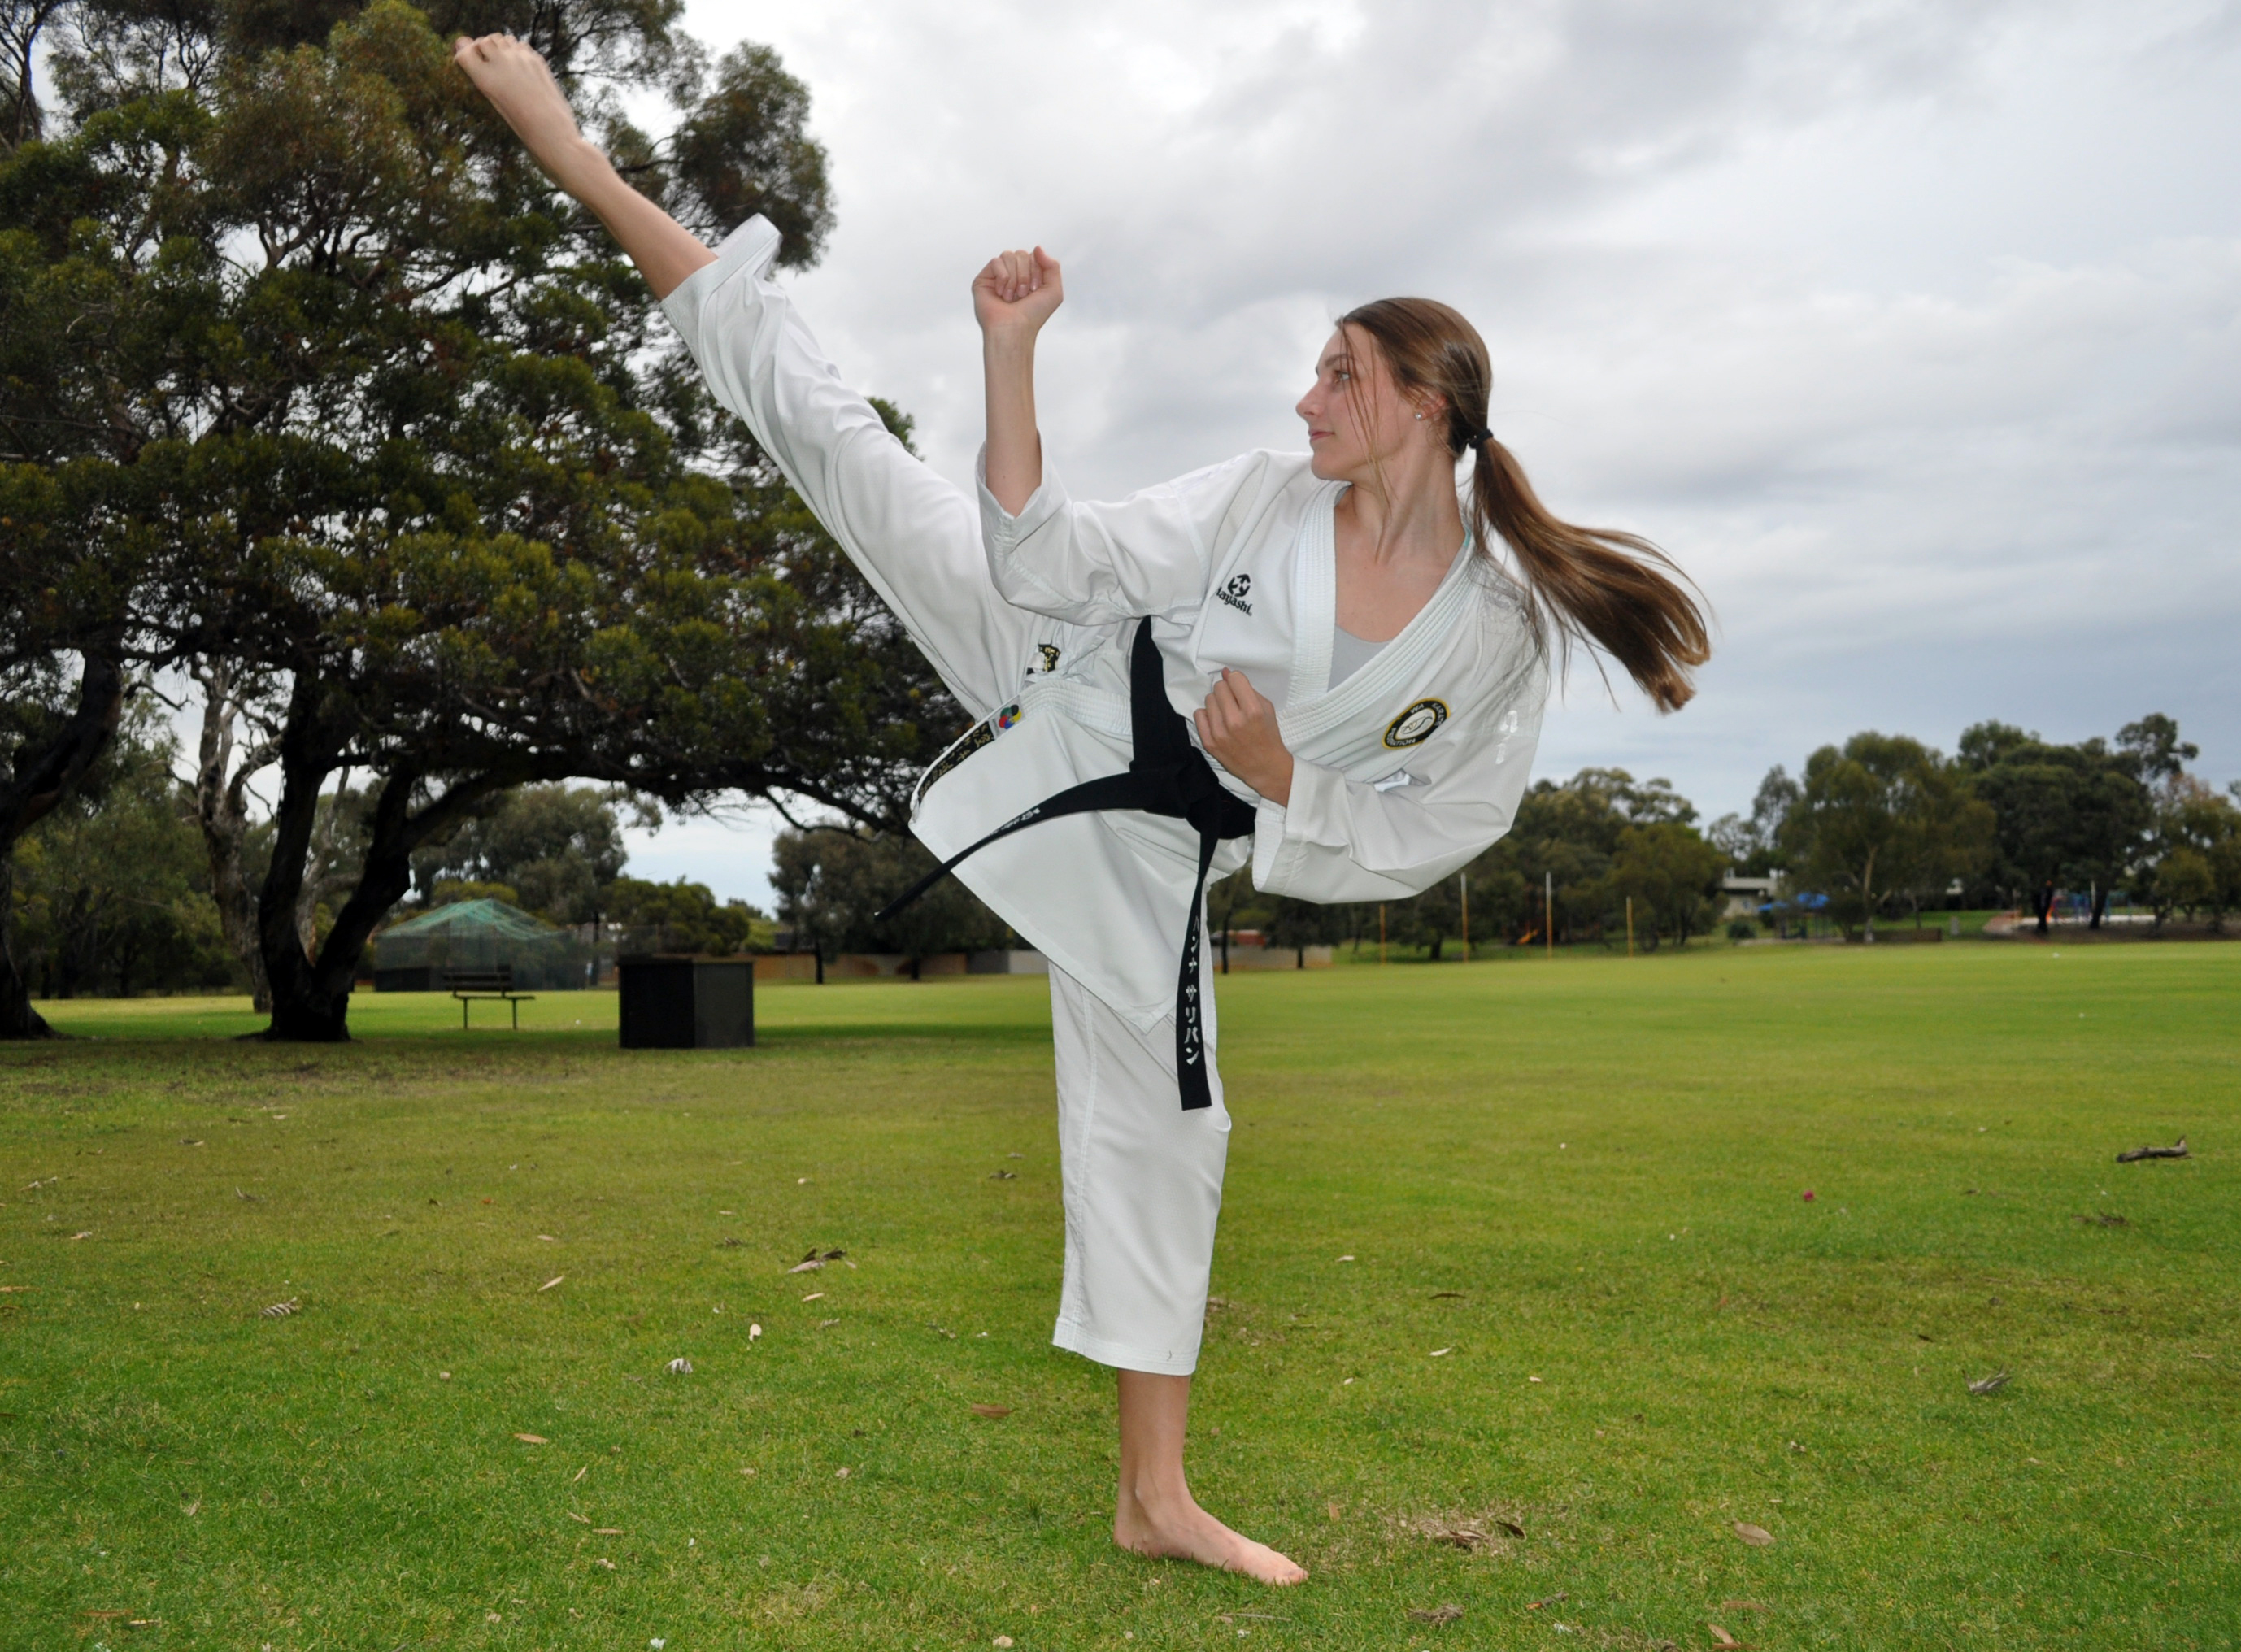 Hannah Sullivan is training for the Karate Junior World Championships in Spain in October.